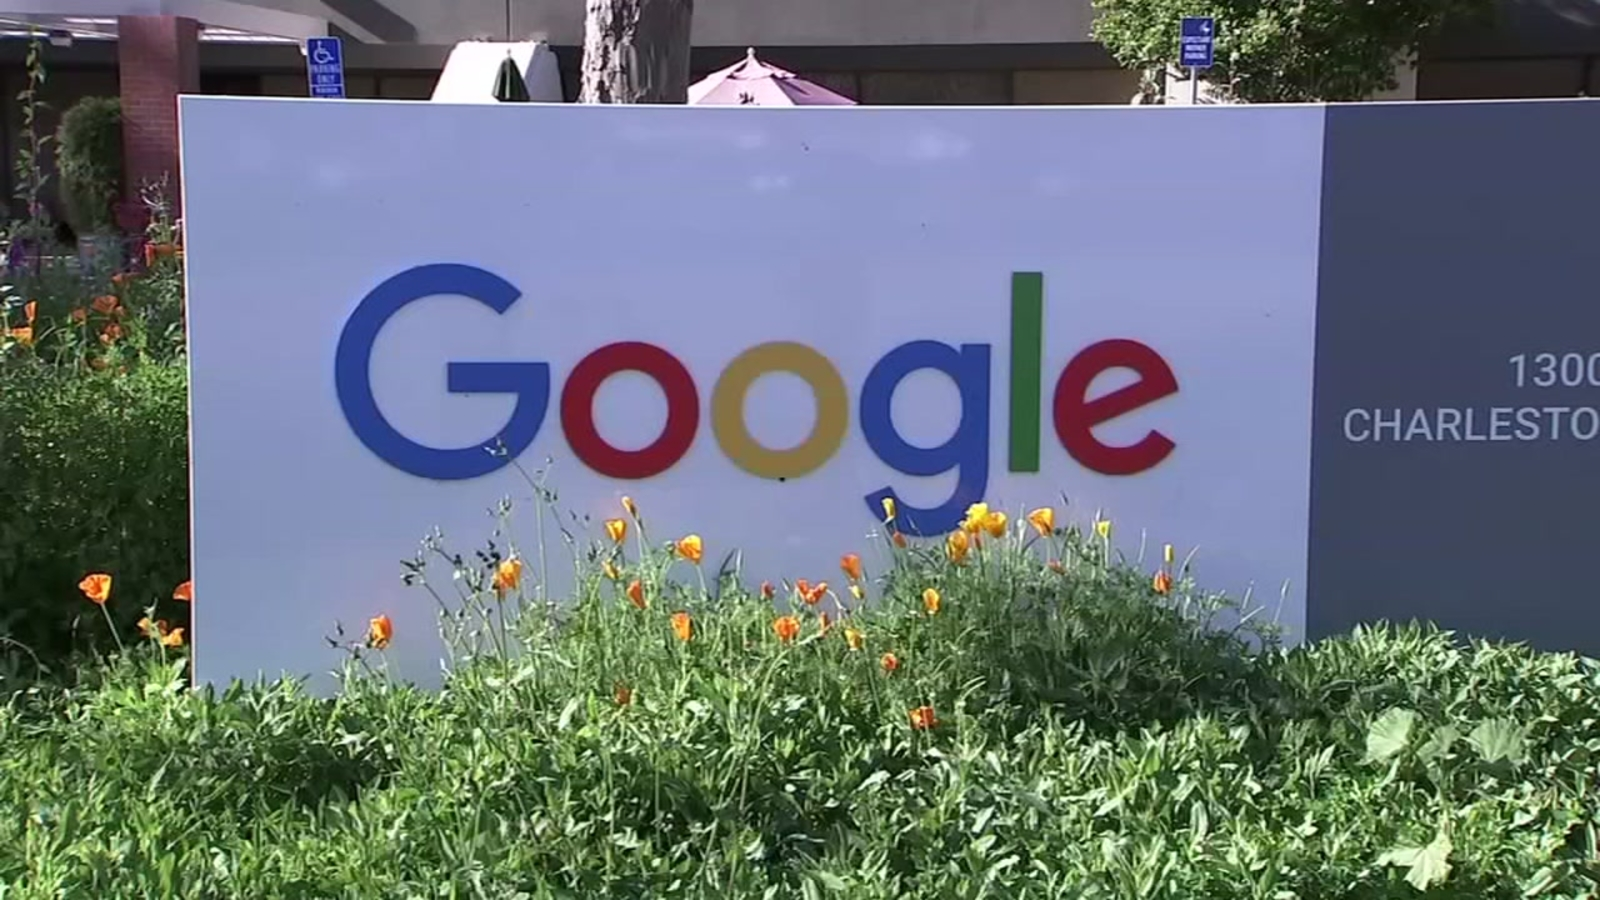 Health investigation into measles case at Google campus spans two counties